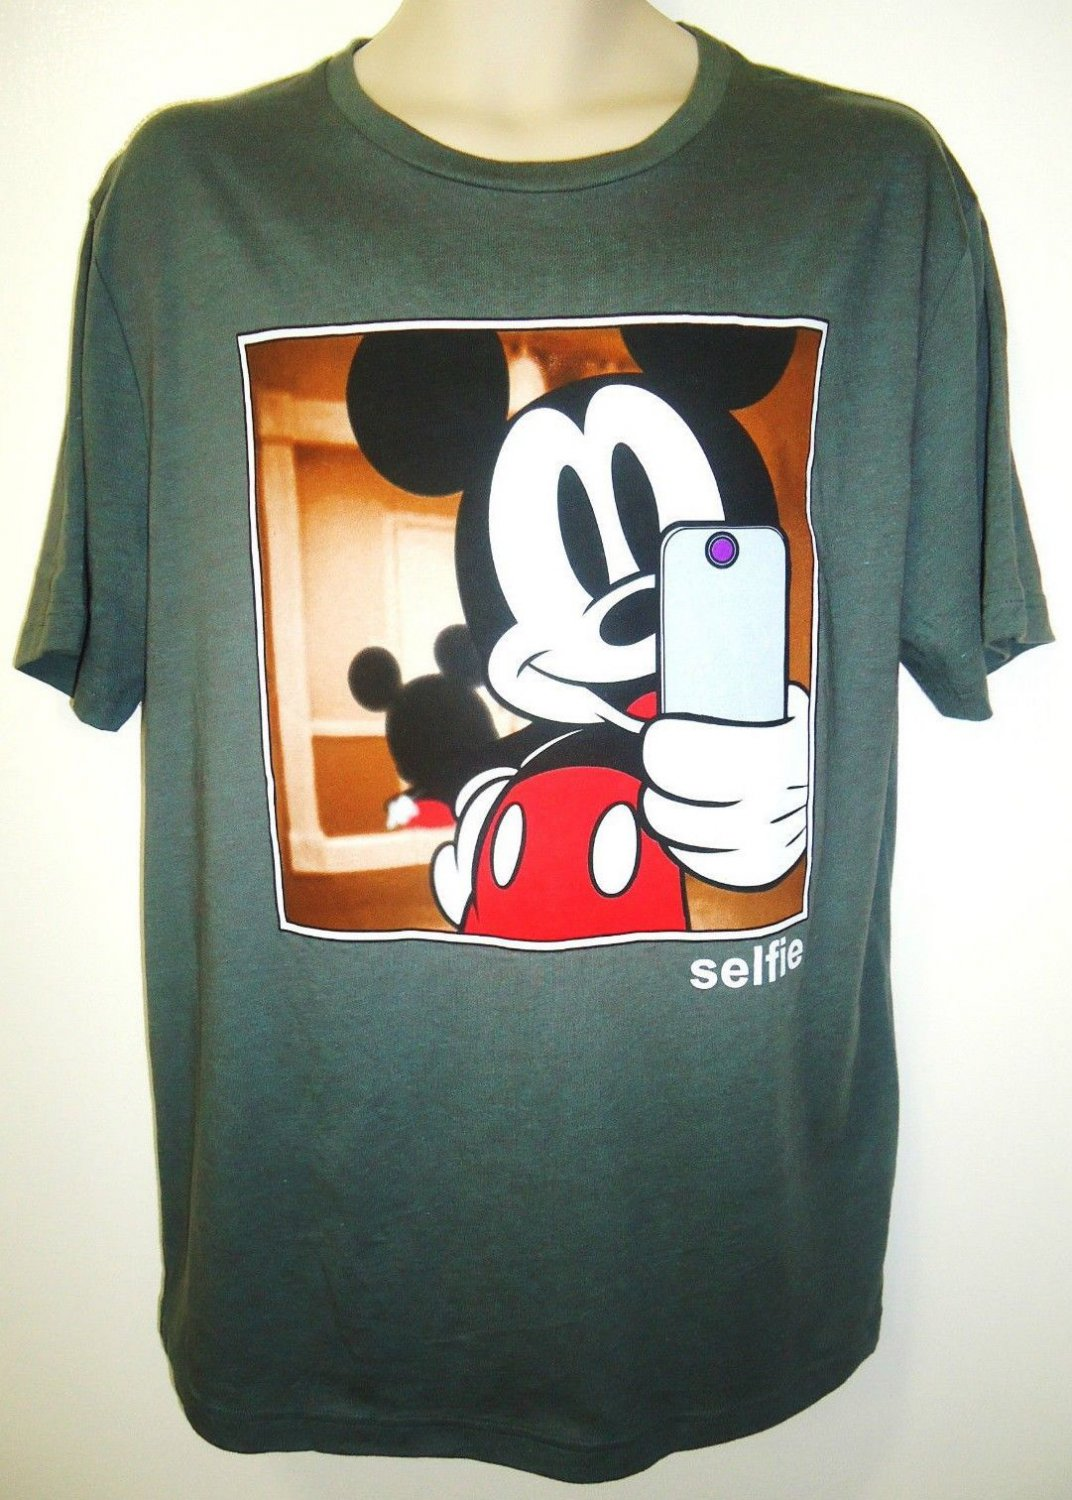 DISNEY - MICKEY MOUSE - CELLPHONE - SELFIE - PHOTO - TEE - LARGE - NEW - T-SHIRT